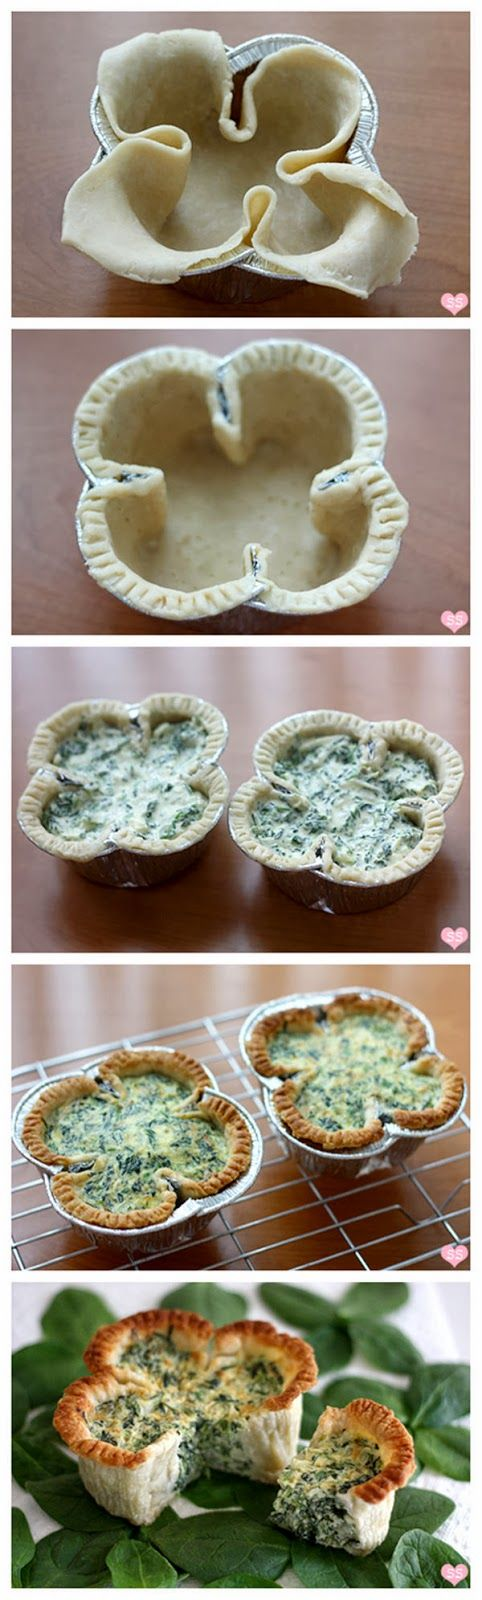 Lucky Spinach Quiche - St. Patrick's Day breakfast, brunch, or dinner! (Just need to find a paleo-friendly crust)